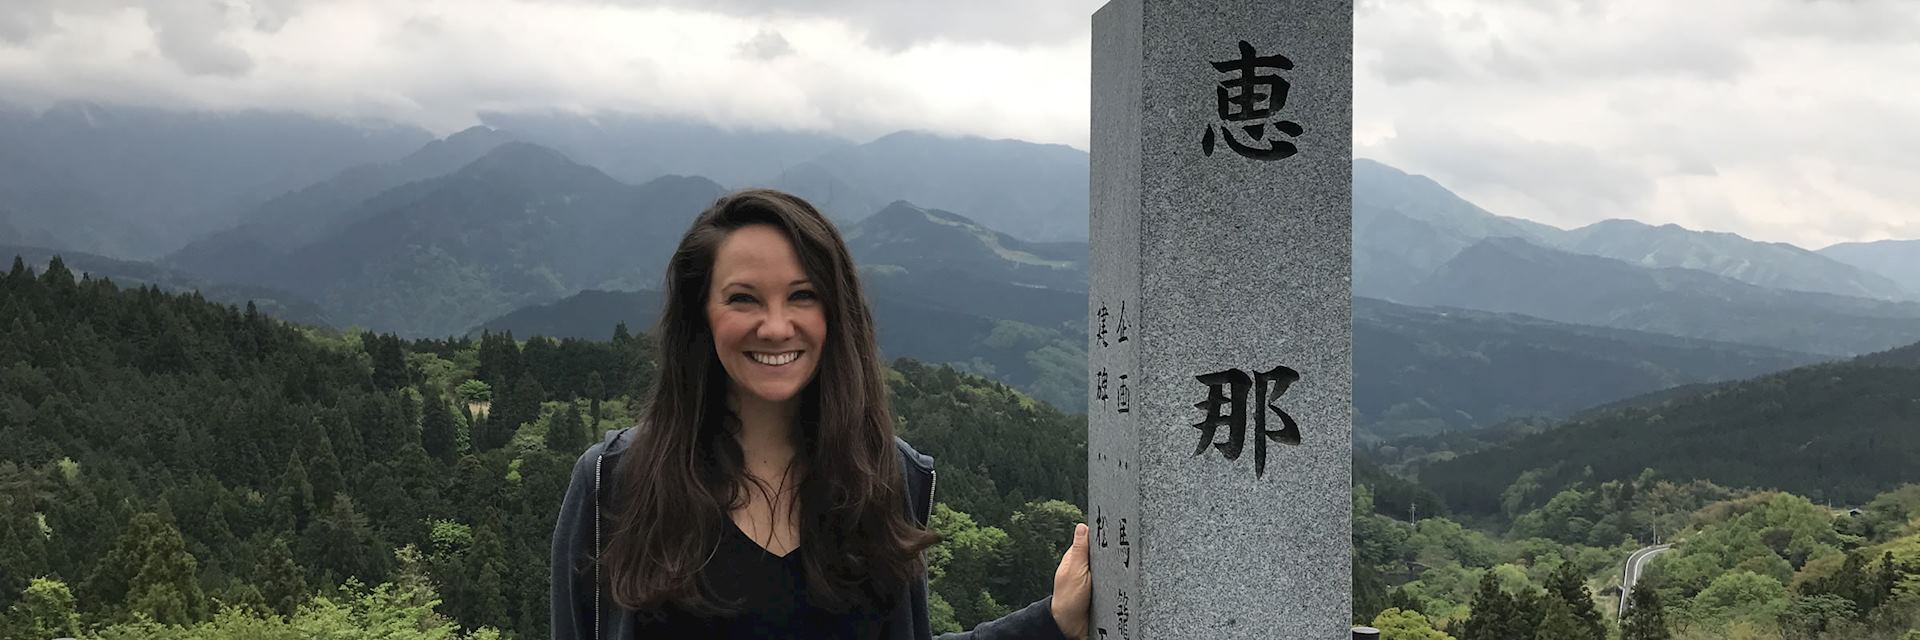 Laura walking the Nakasendo Highway